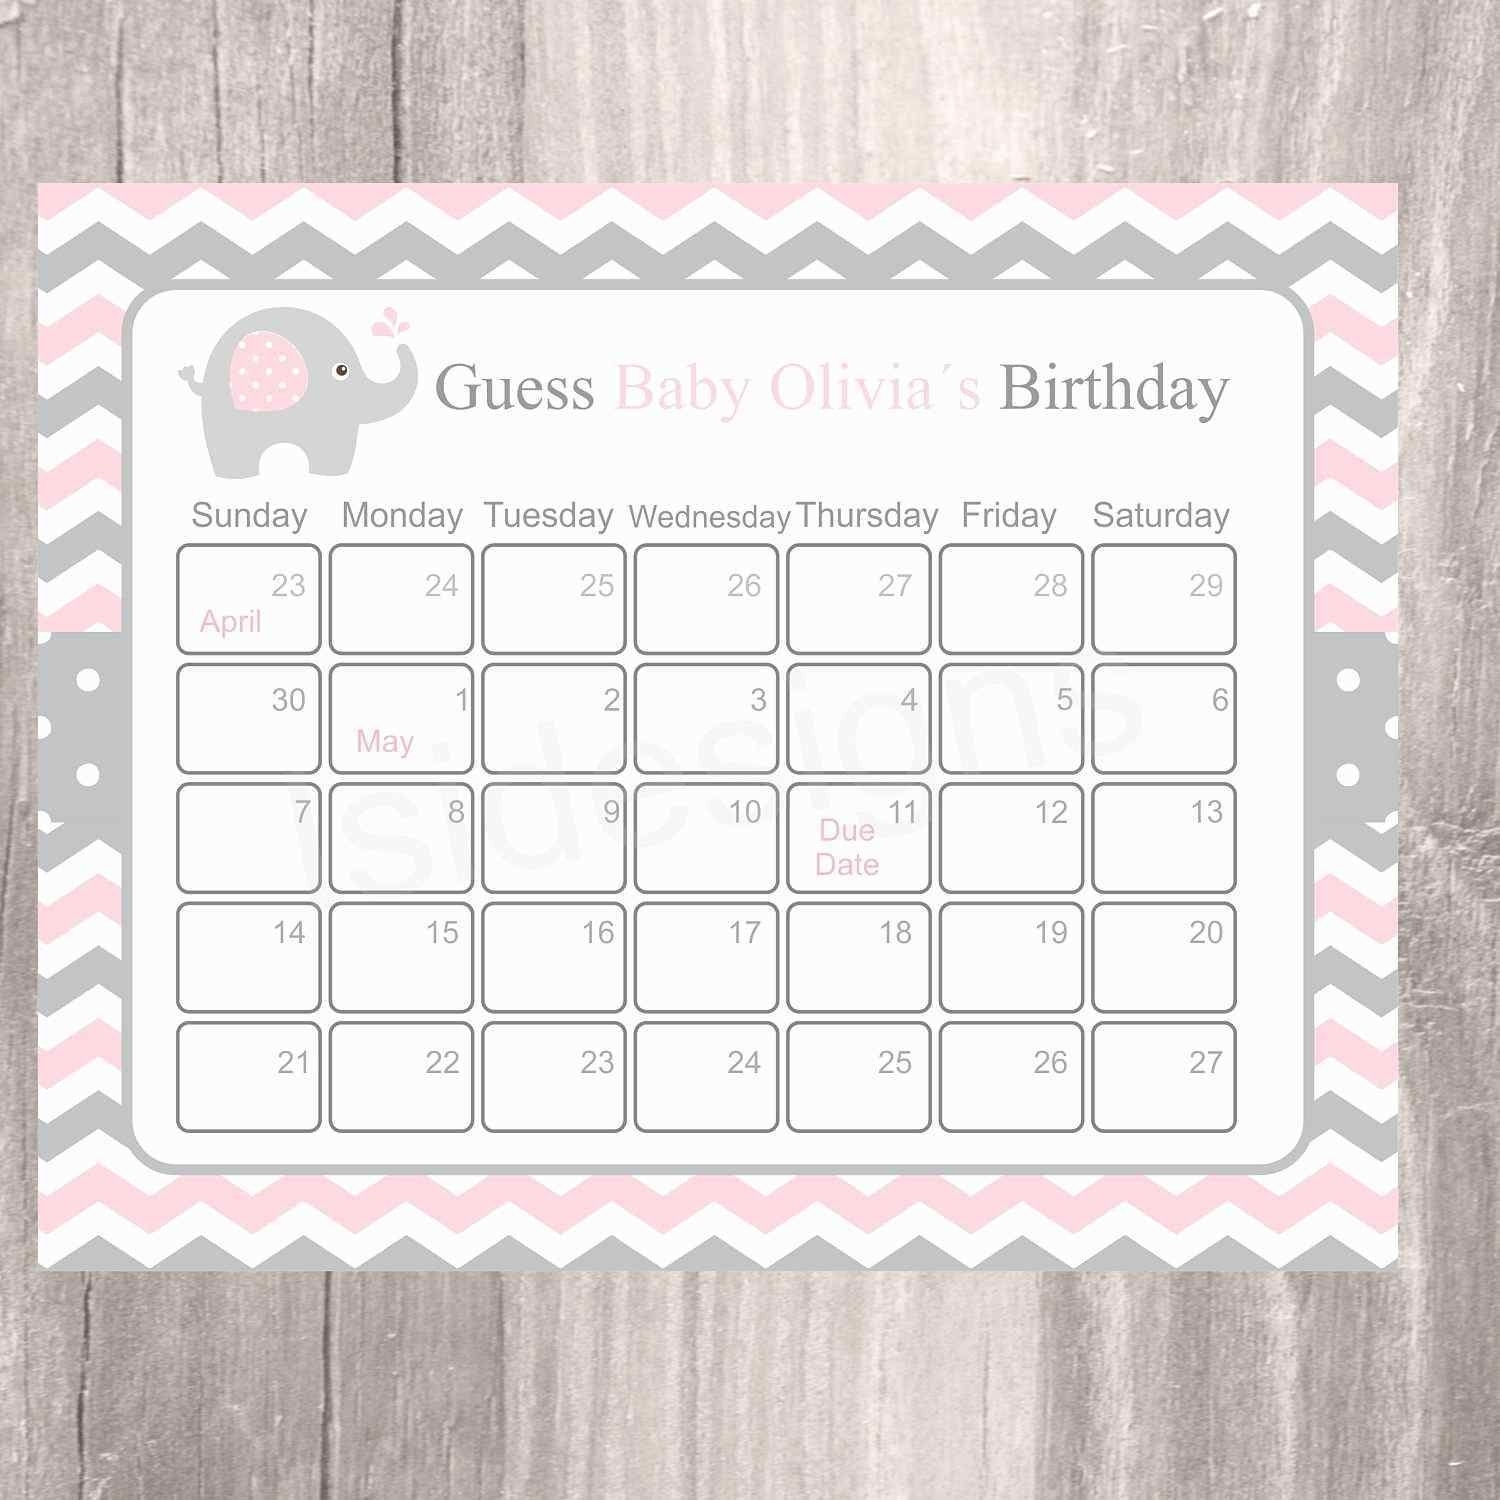 Baby Shower Calendar Template - Mance